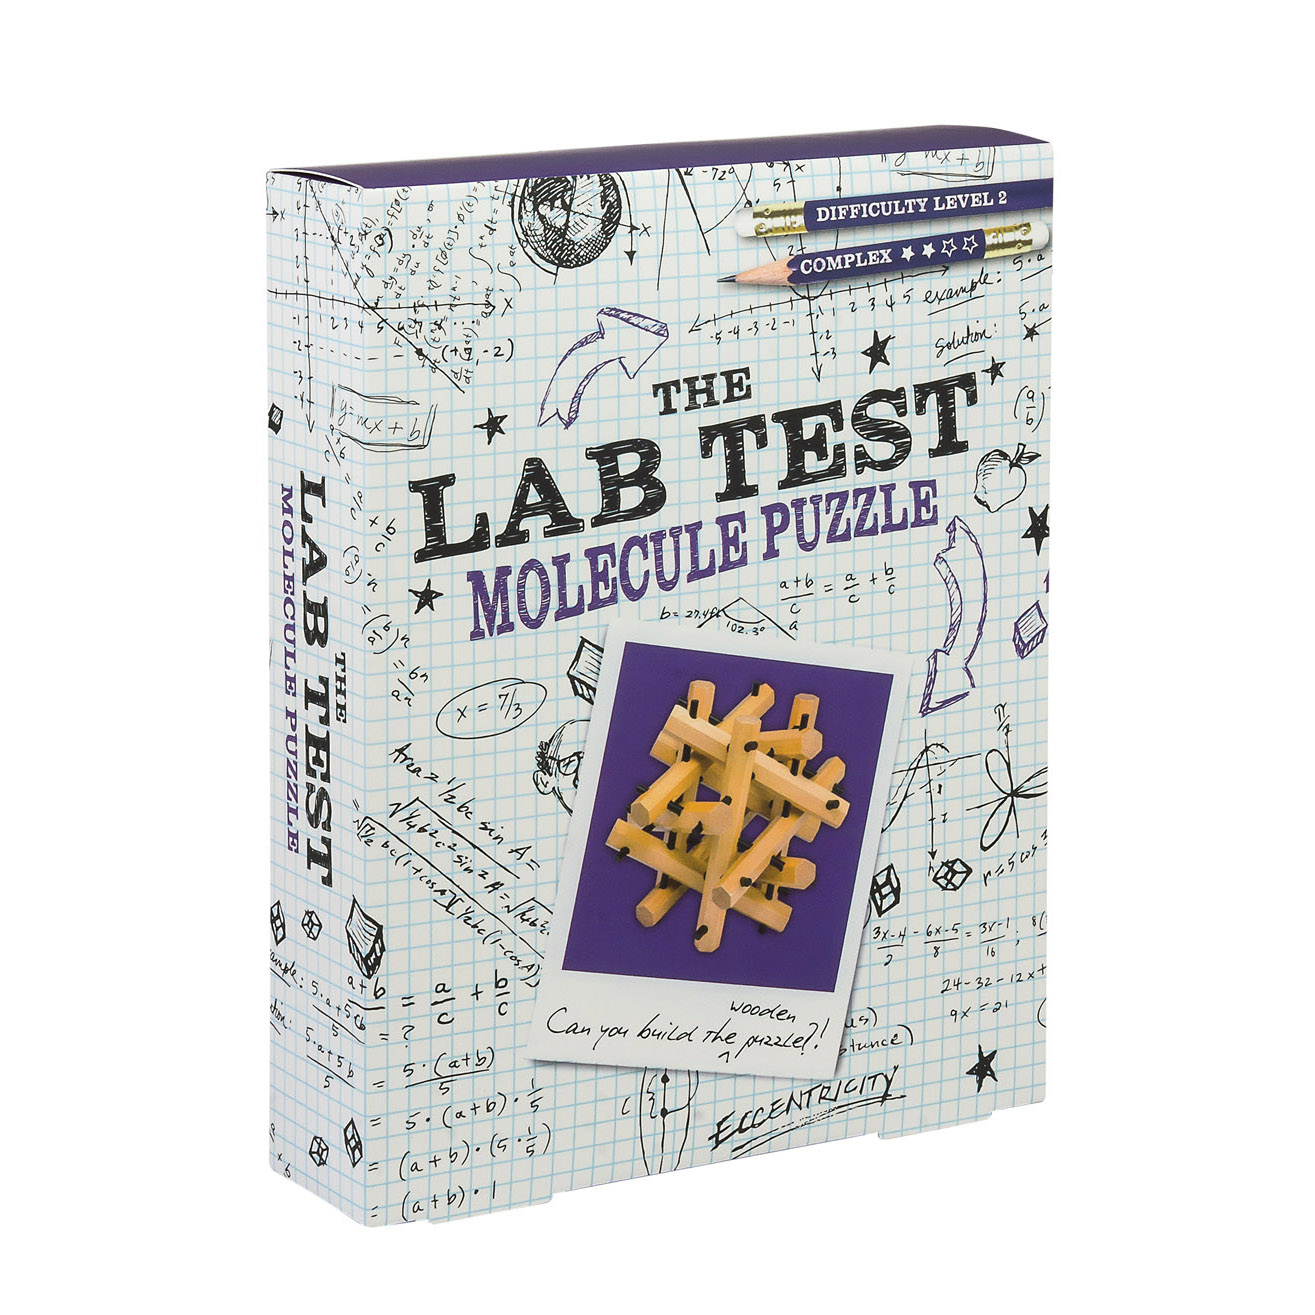 1391 - Lab Test - Molecule